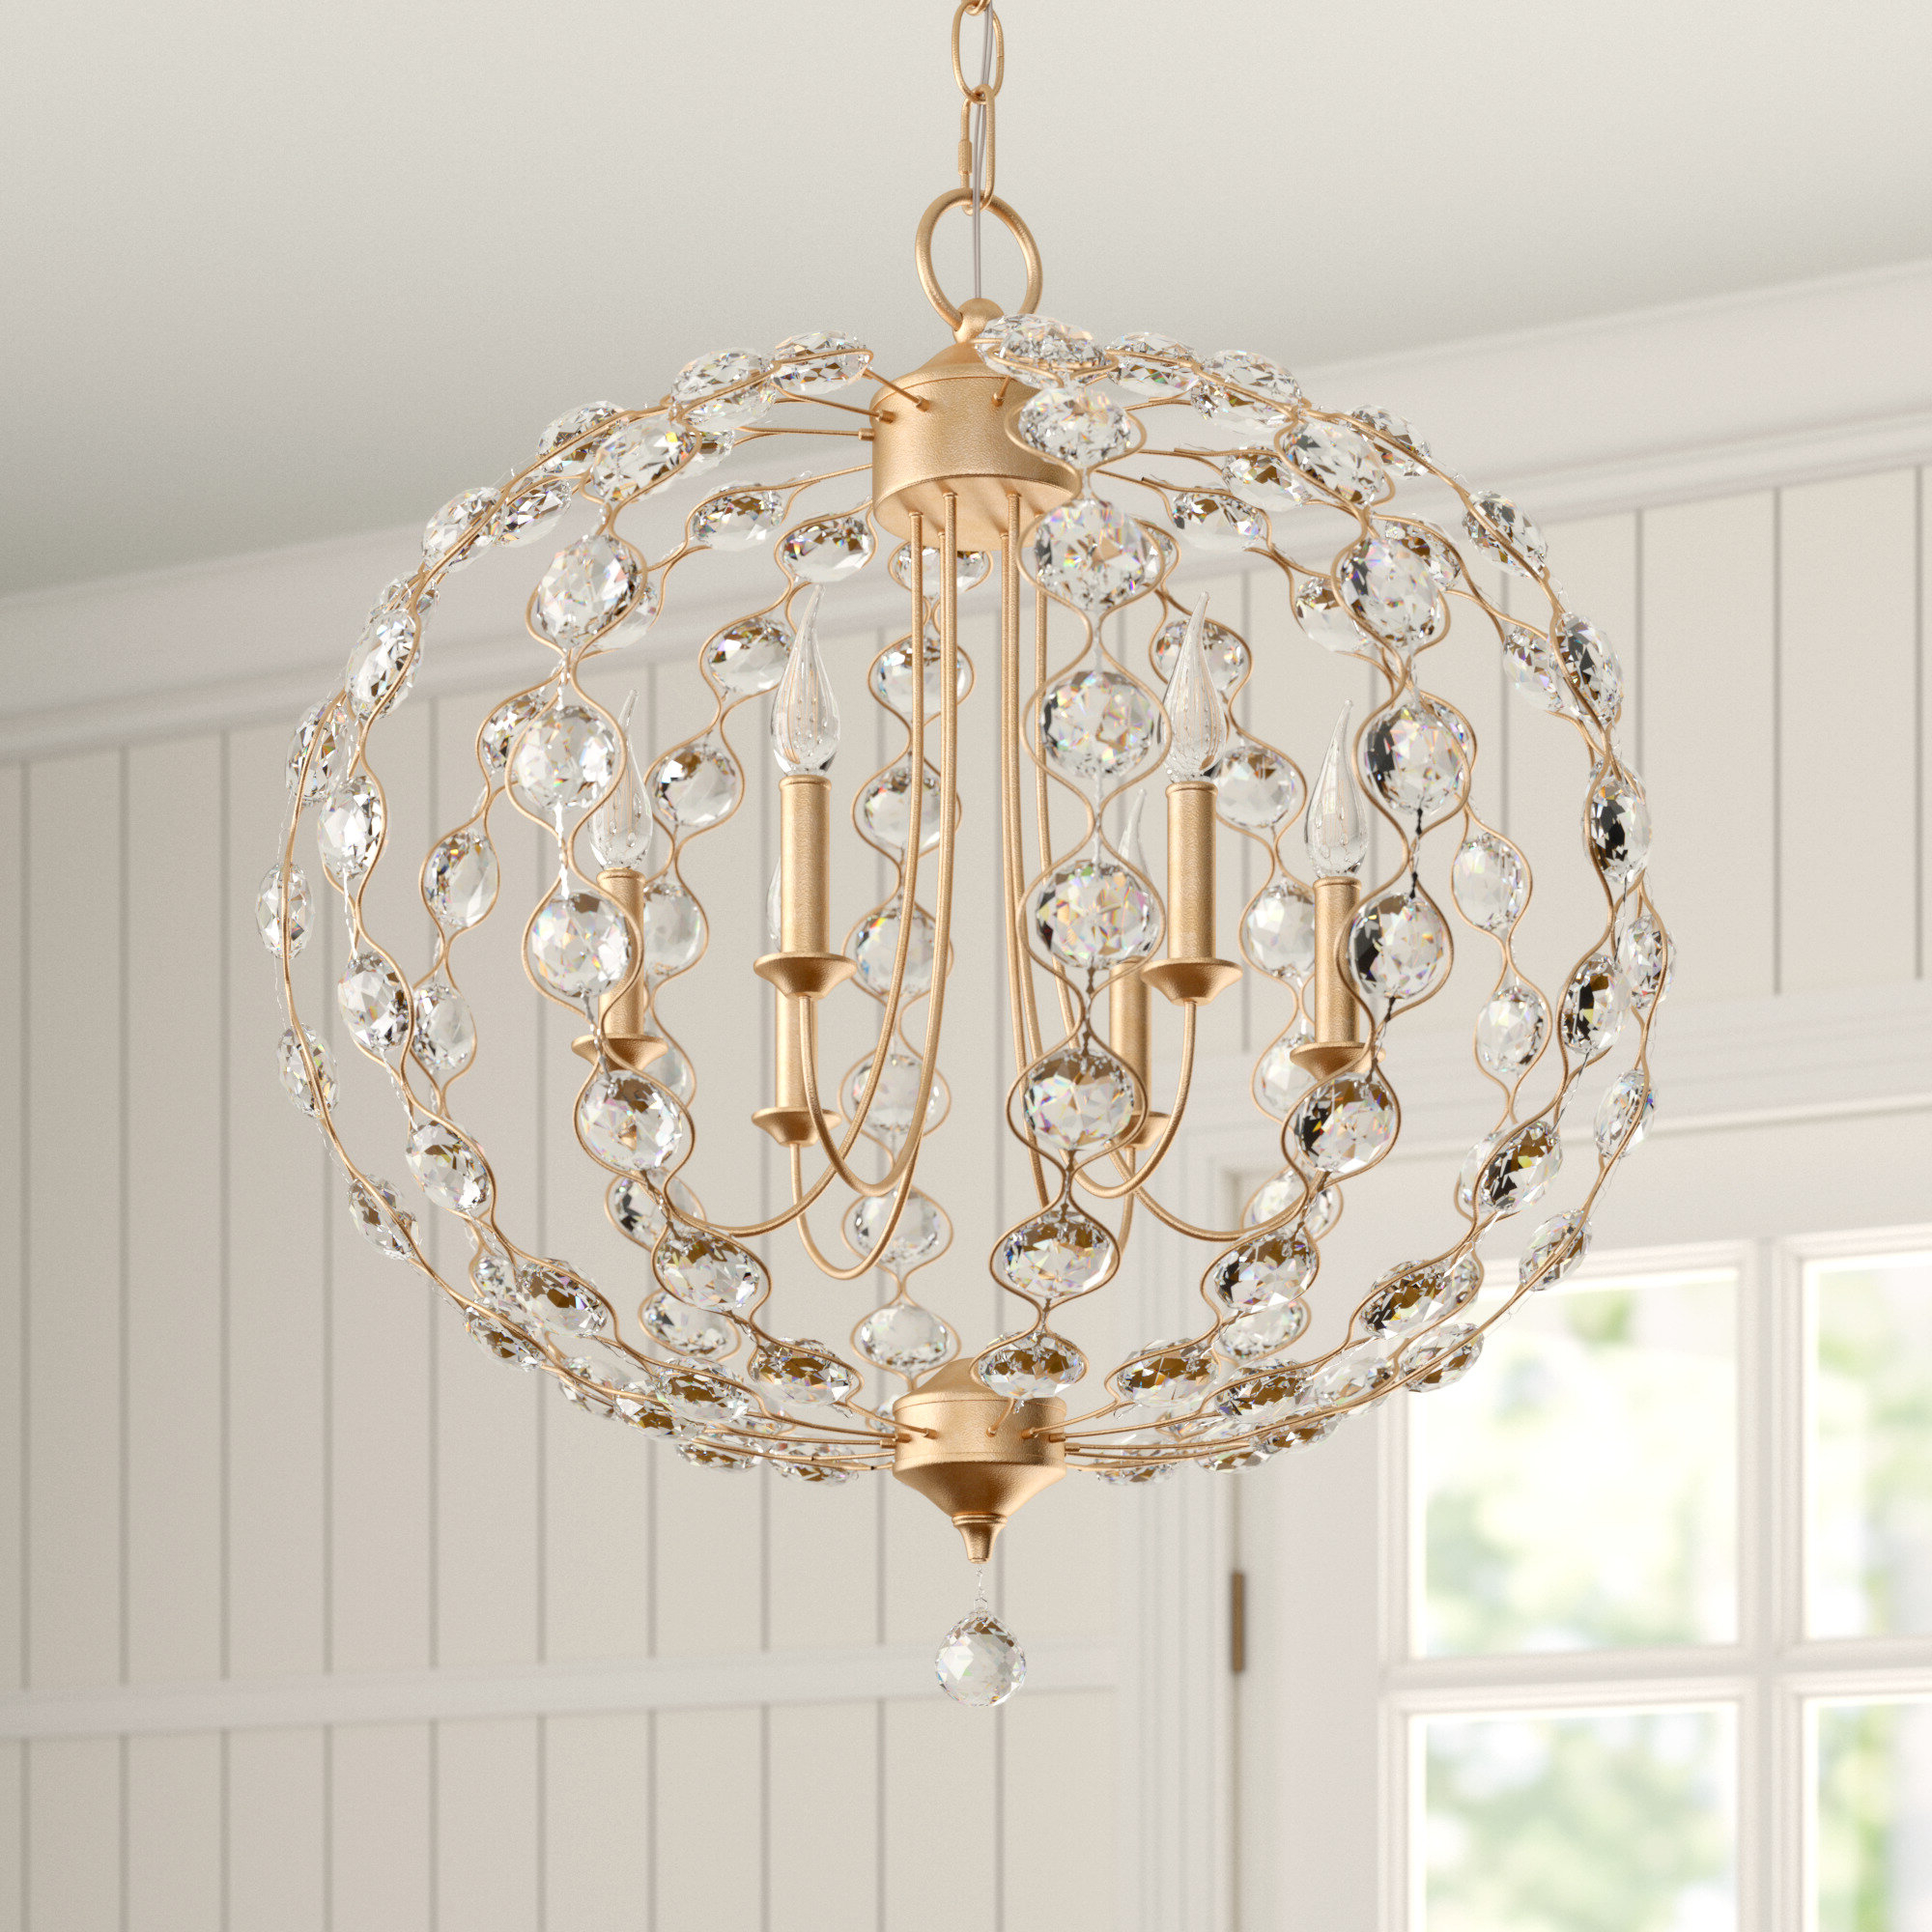 Eira Globe Chandelier With Regard To Fashionable Filipe Globe Chandeliers (Gallery 12 of 25)